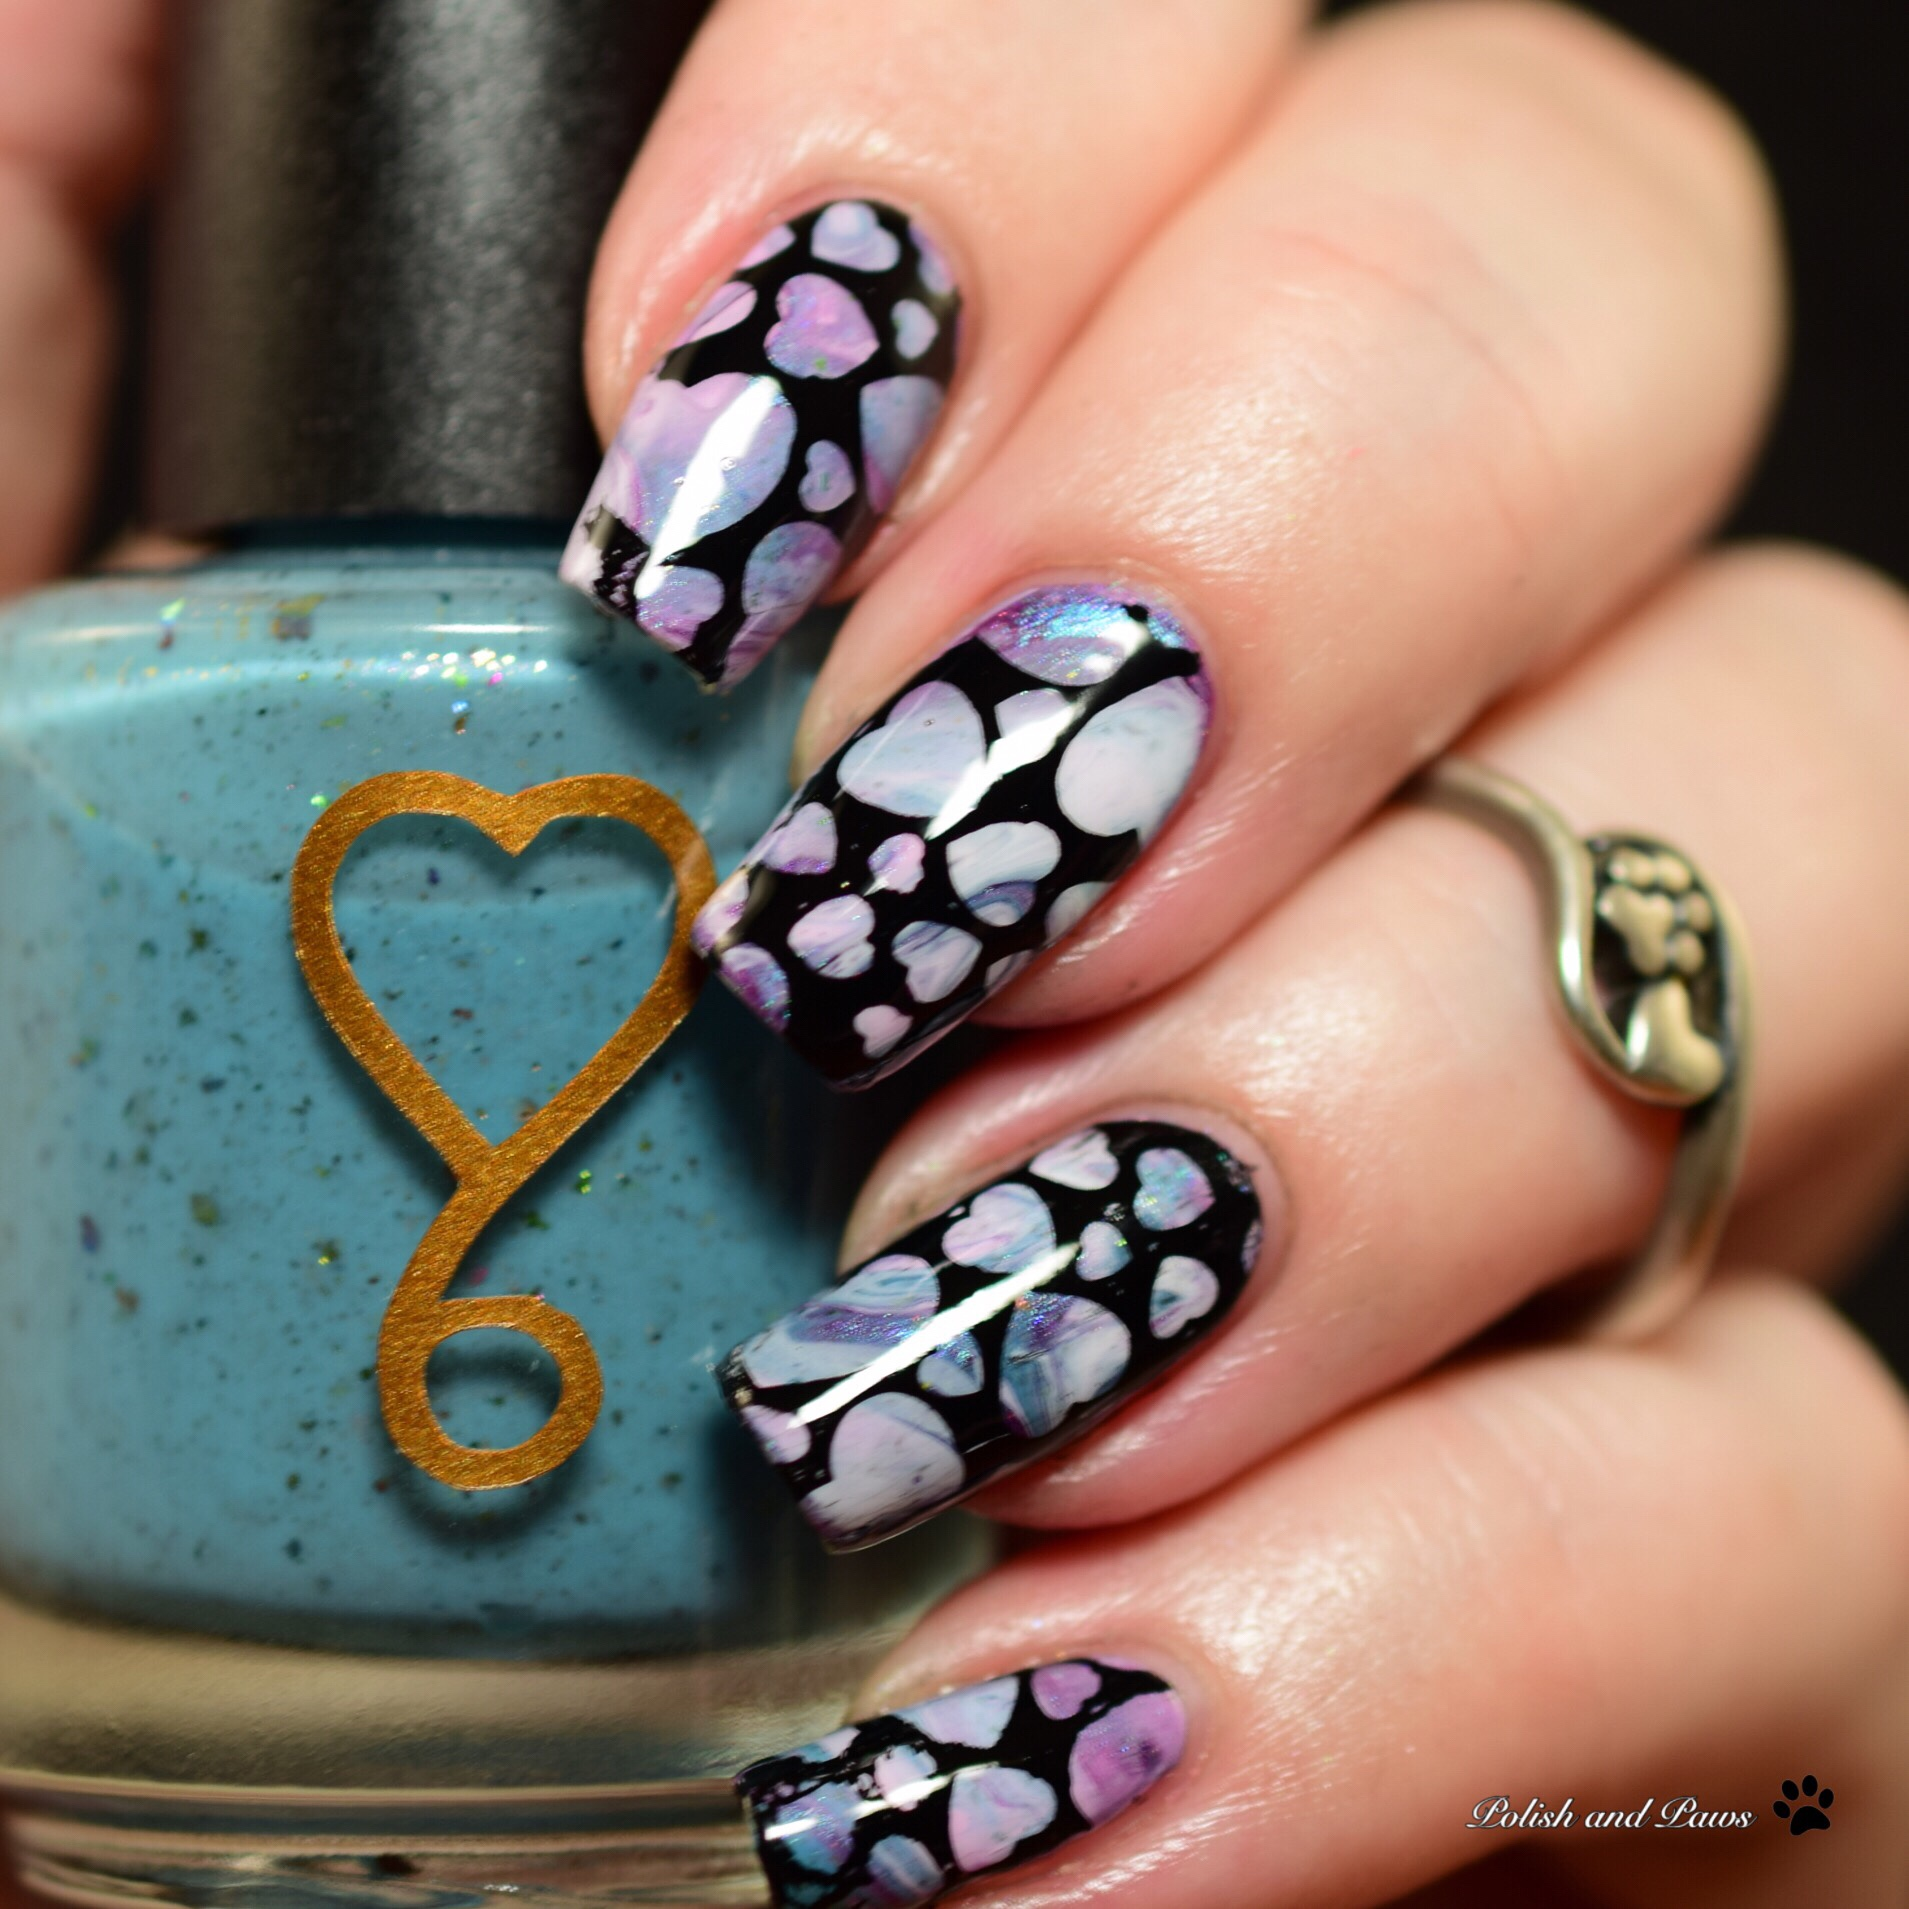 Nail Art ~ Non Traditional Valentine's Day Mani